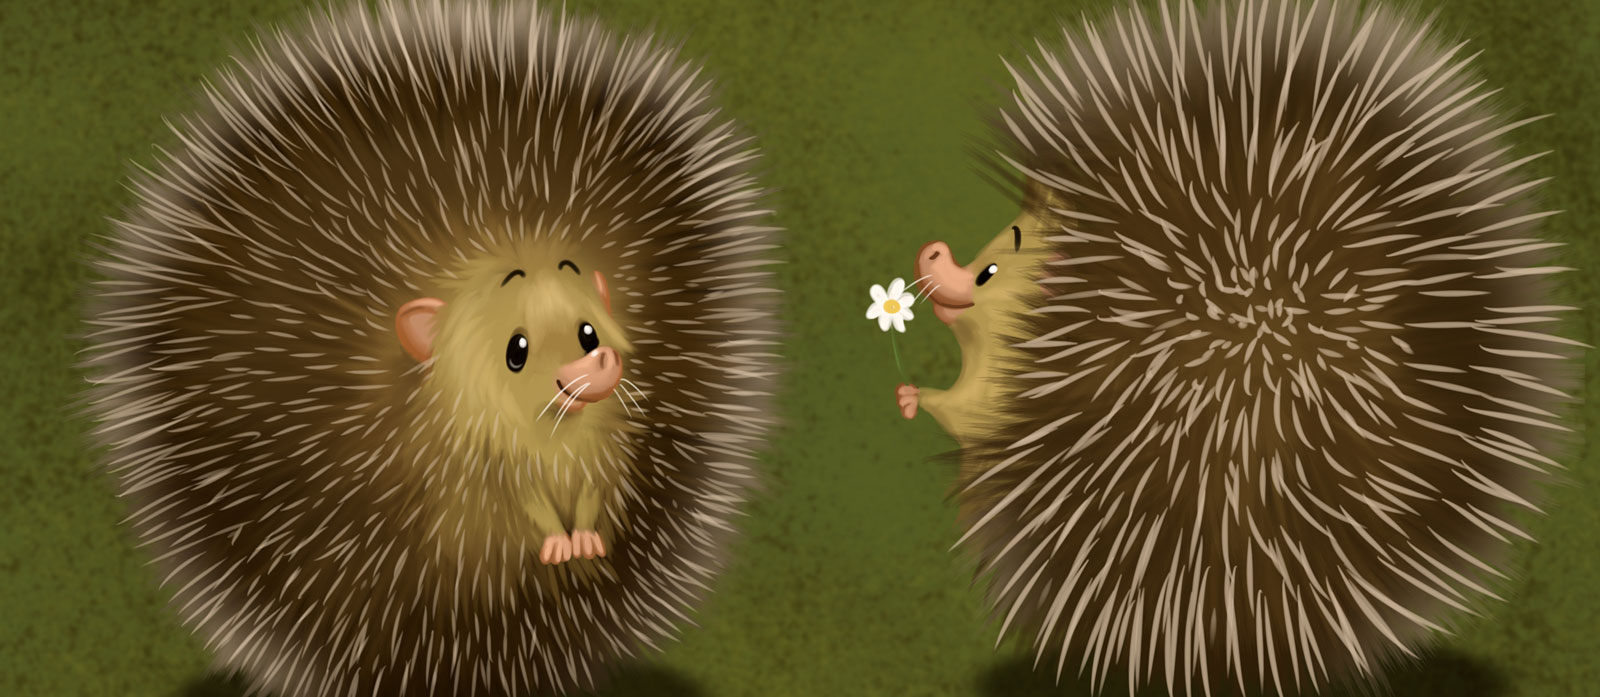 Herik, our loving hedgehog